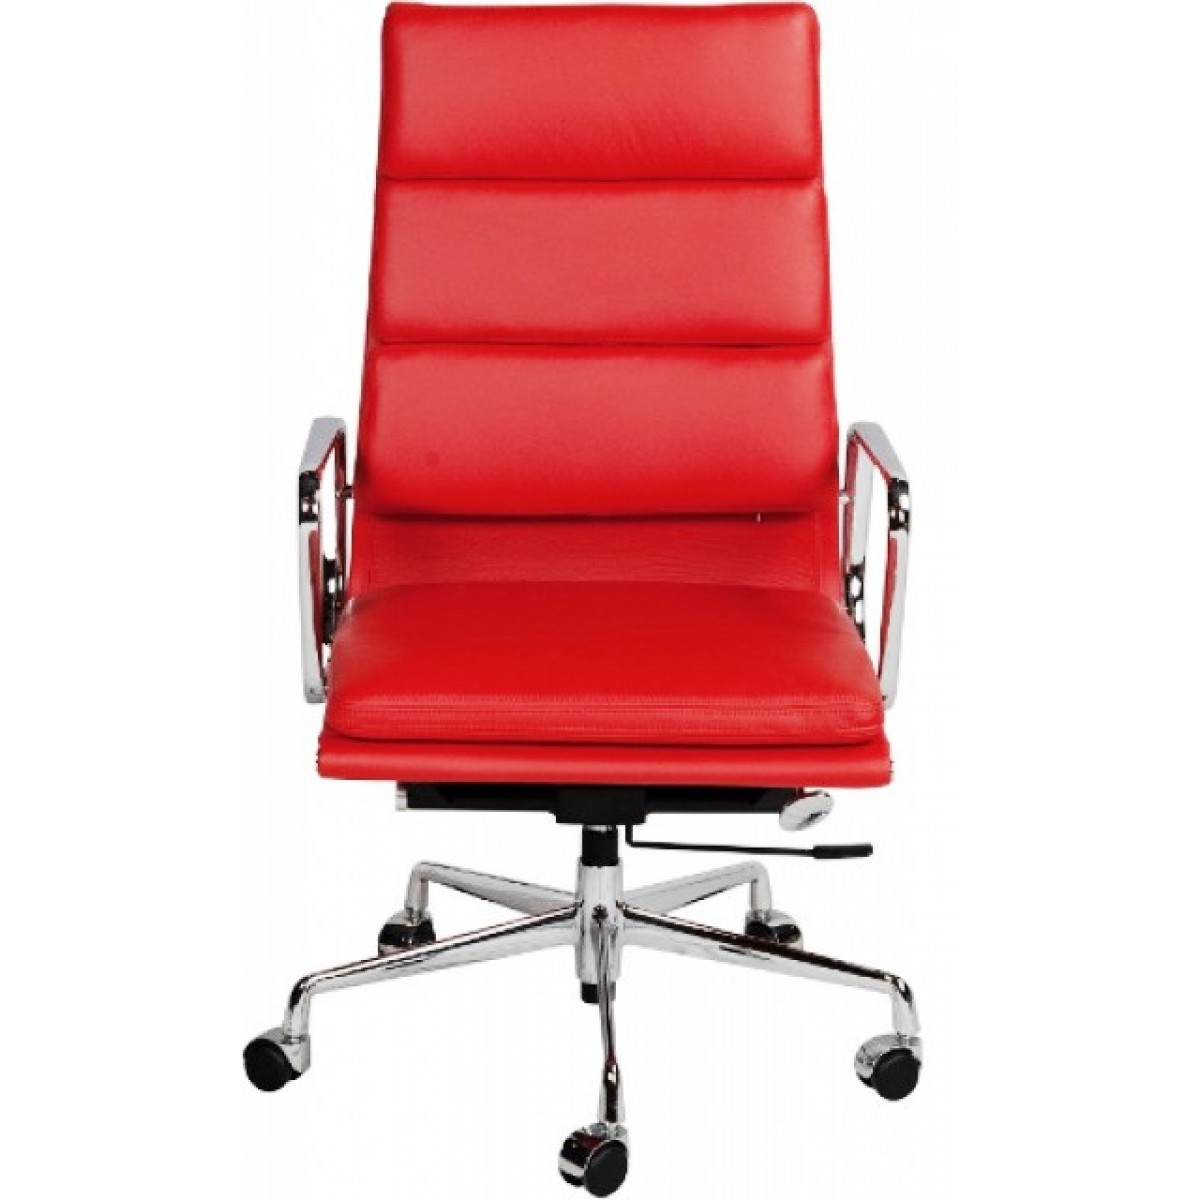 EA219 Eames Style Office Chair High Back Soft Pad Red Leather   Replica